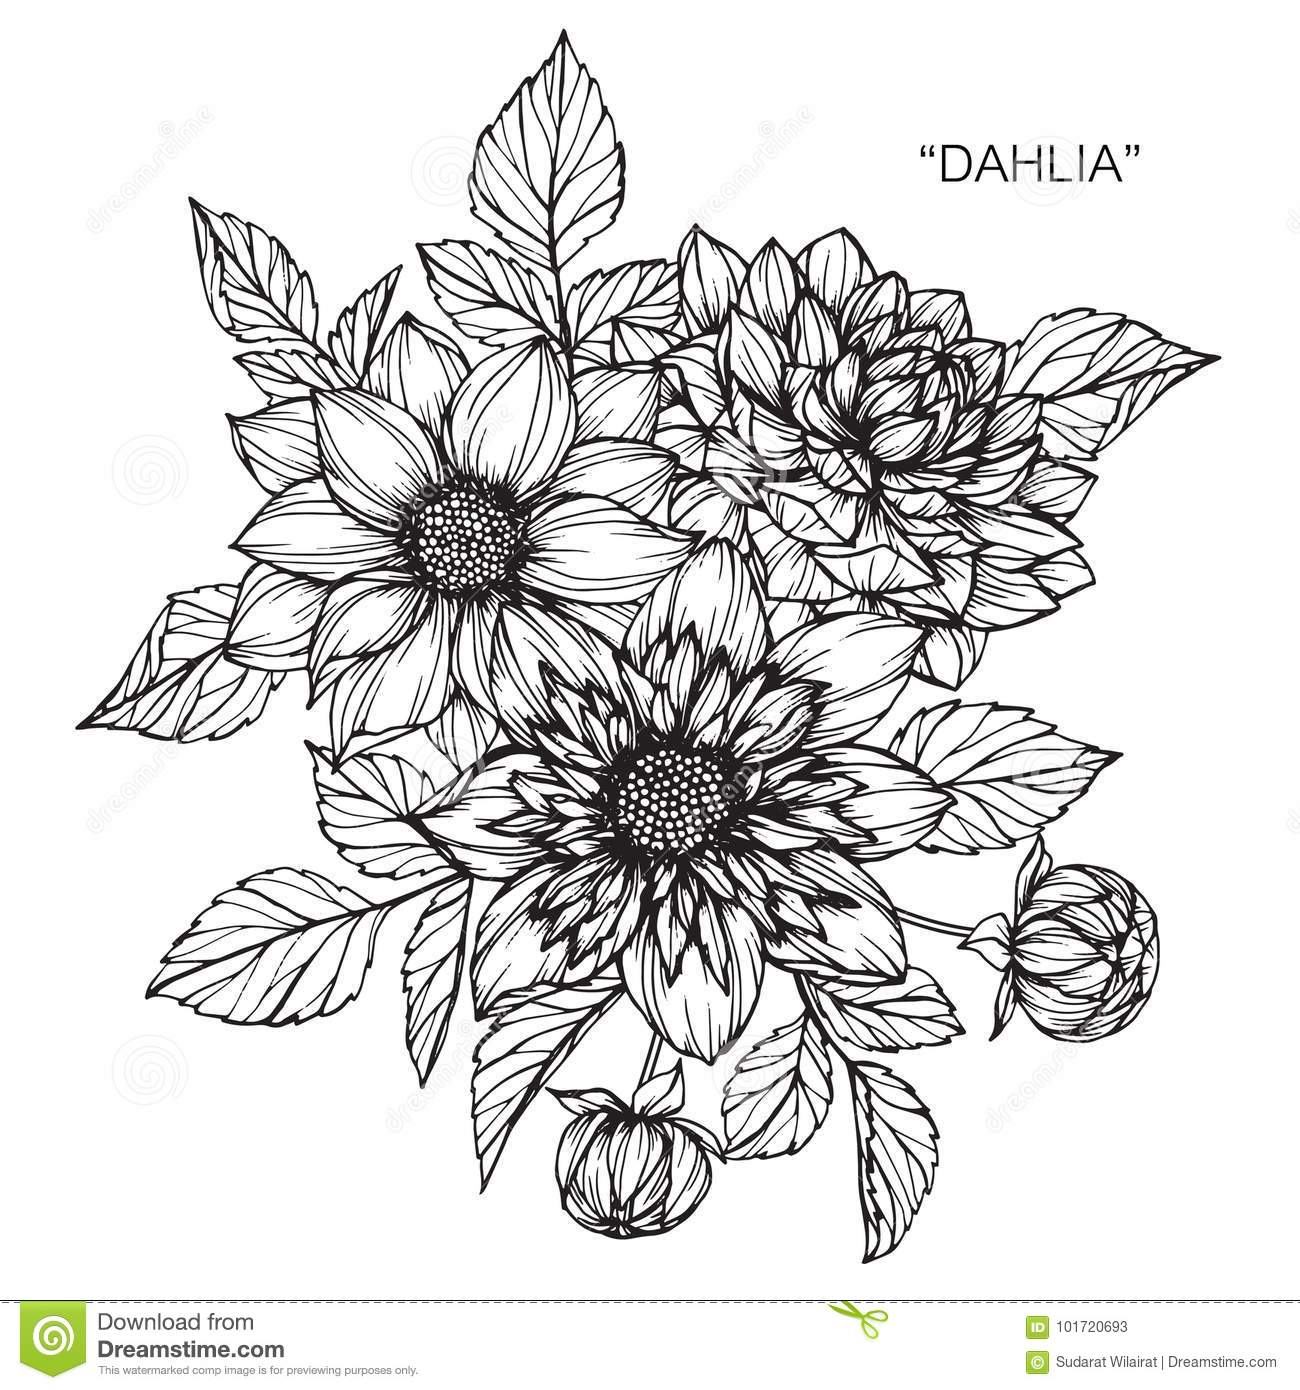 dahlia flowers drawing and